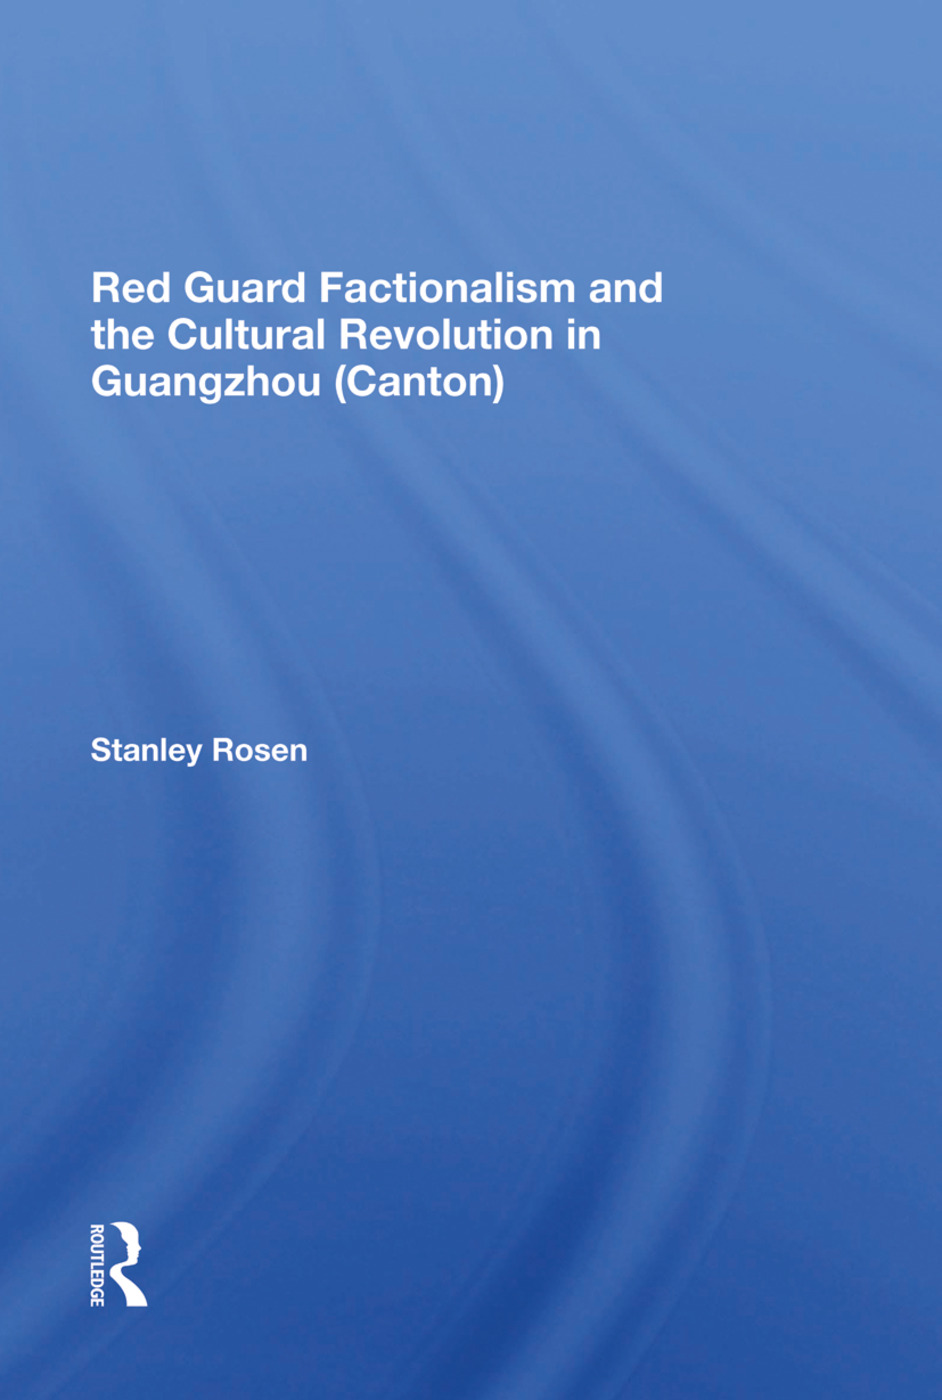 Red Guard Factionalism And The Cultural Revolution In Guangzhou (canton) book cover